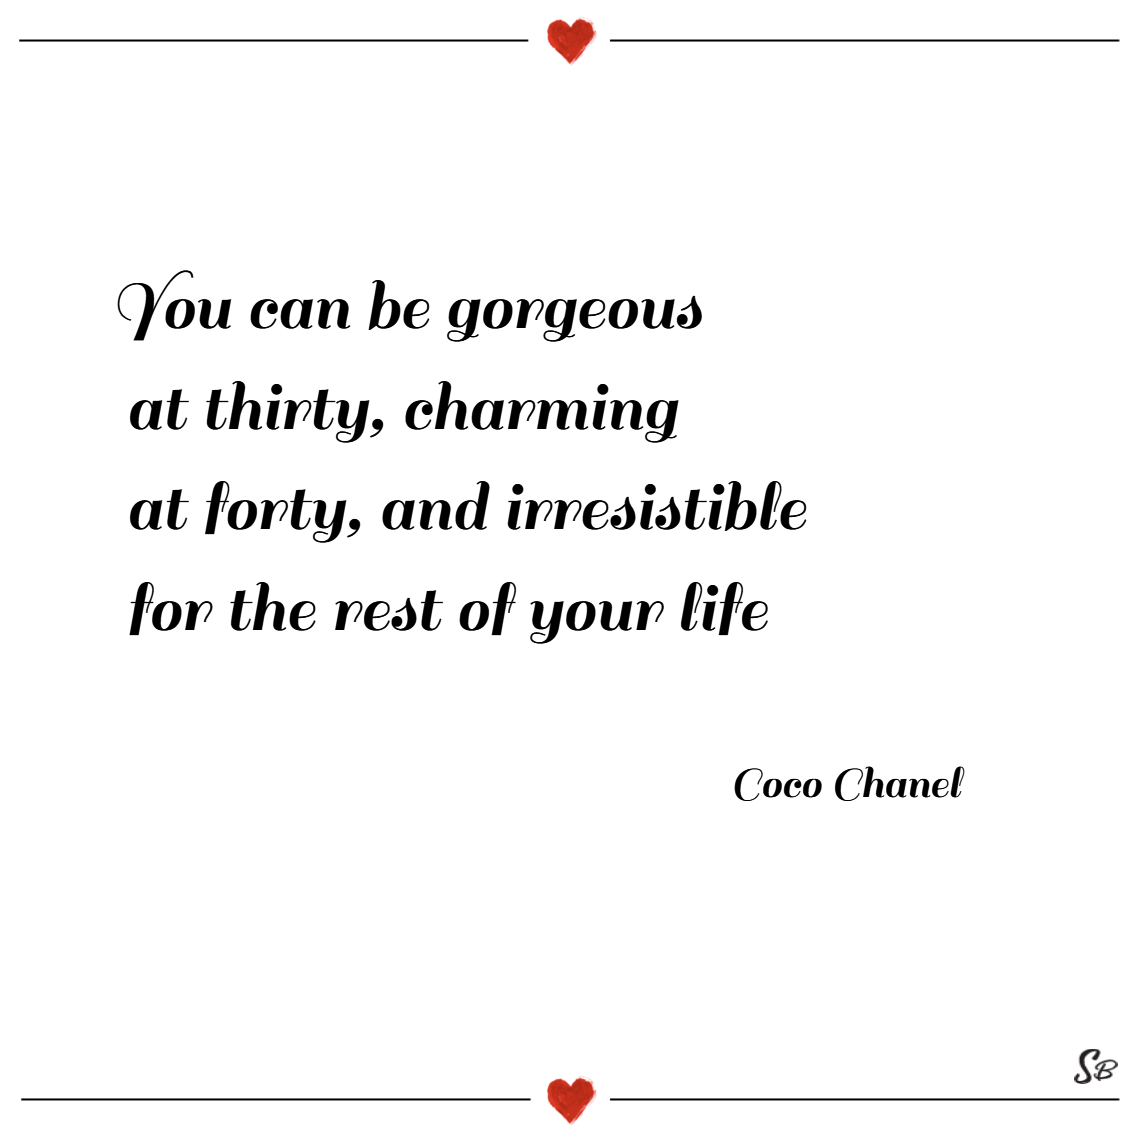 You can be gorgeous at thirty, charming at forty, and irresistible for the rest of your life. – coco chanel